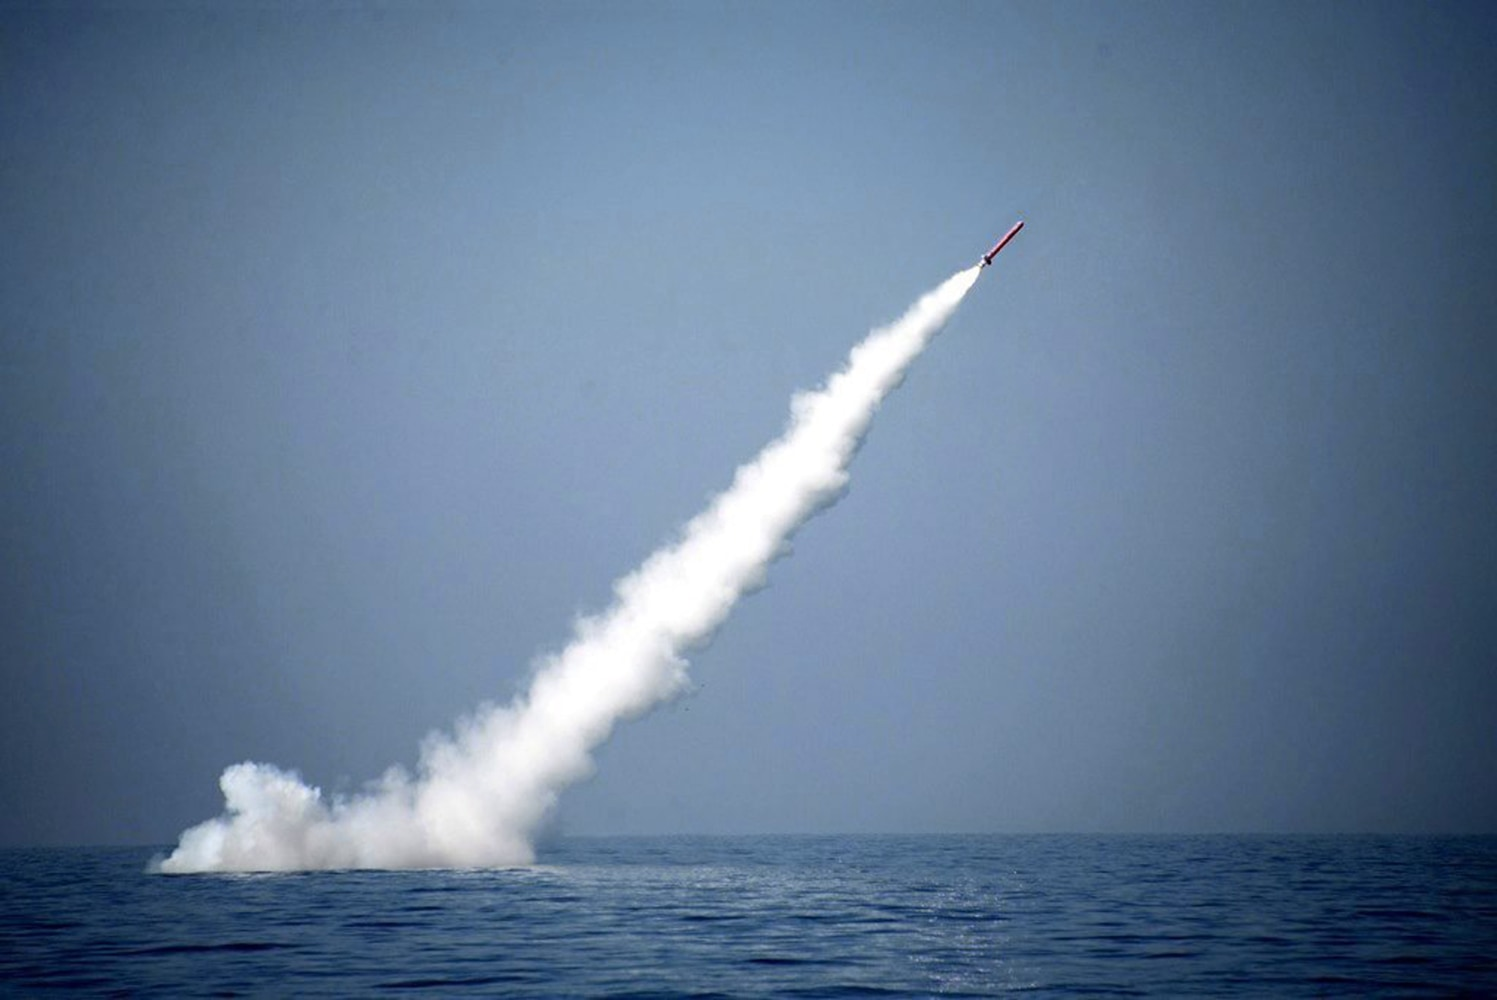 Pakistan tests sub-launched cruise missile